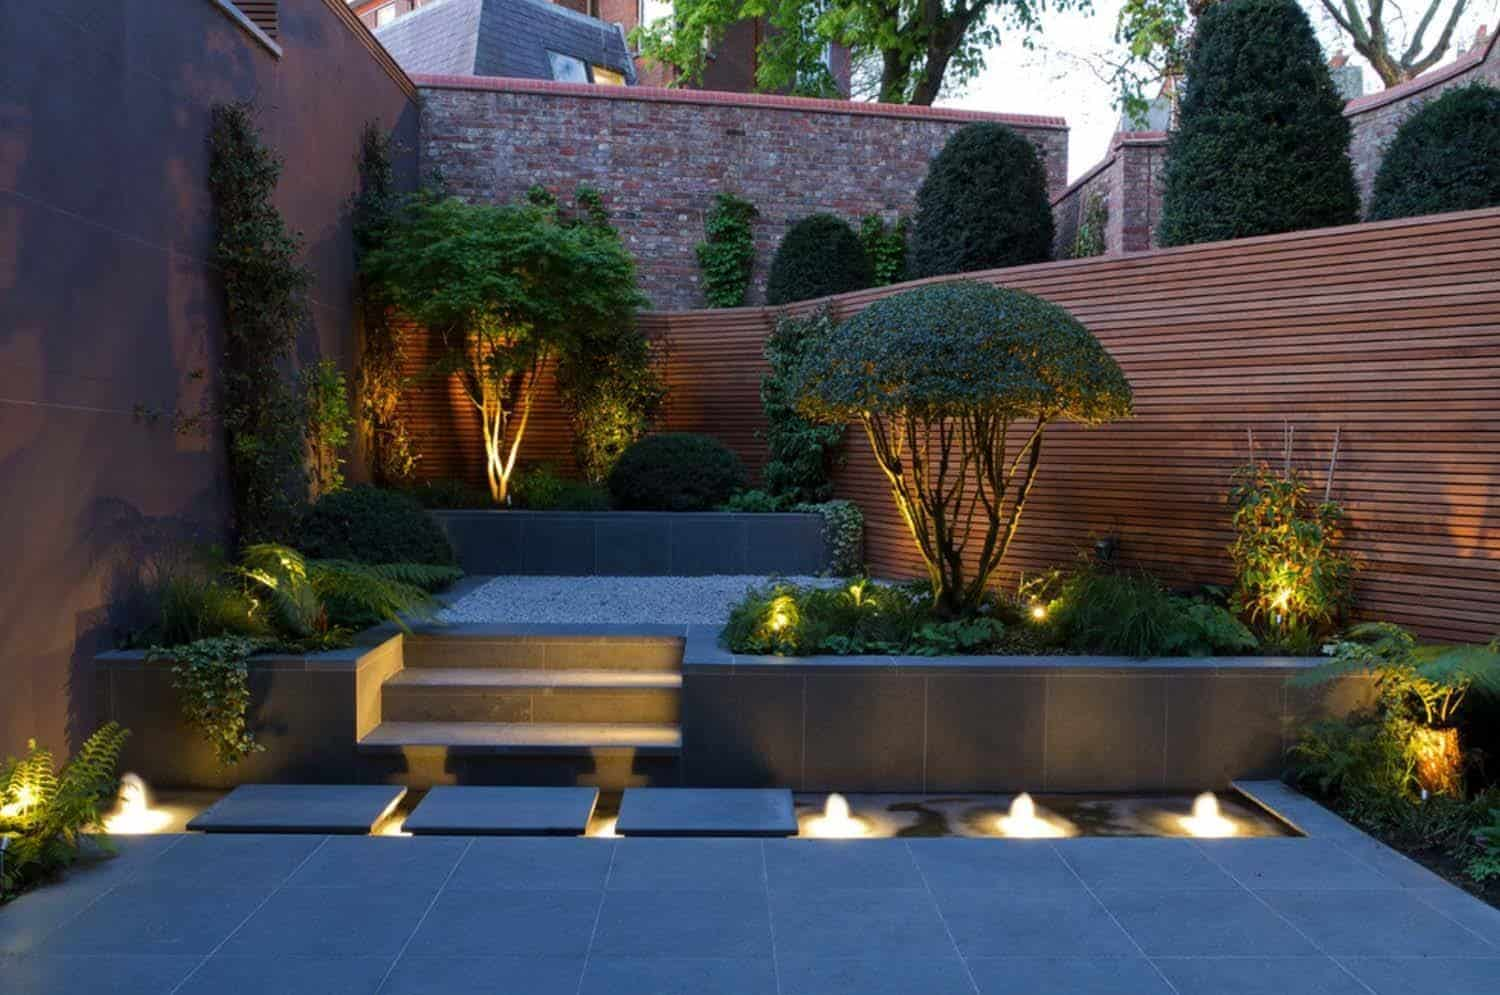 35 modern outdoor patio designs that will blow your mind for Backyard patio design ideas